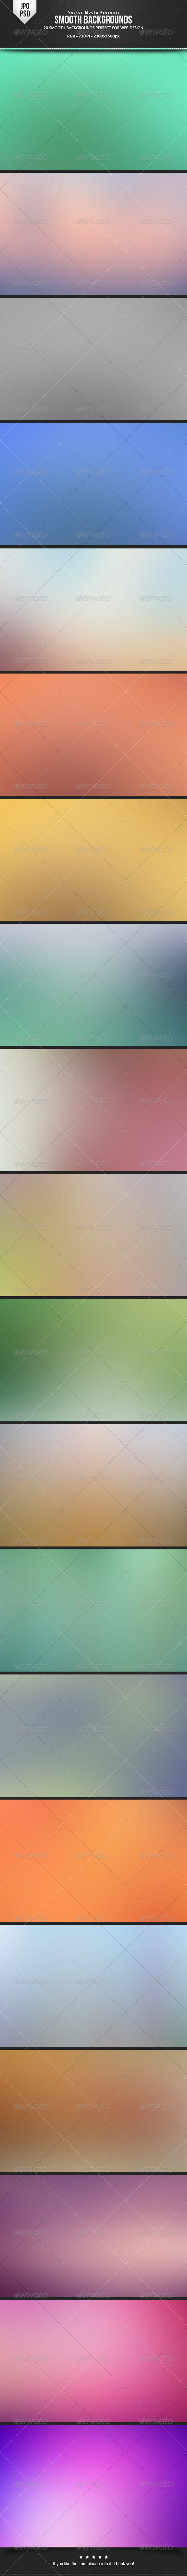 GraphicRiver Smooth Backgrounds 6626414